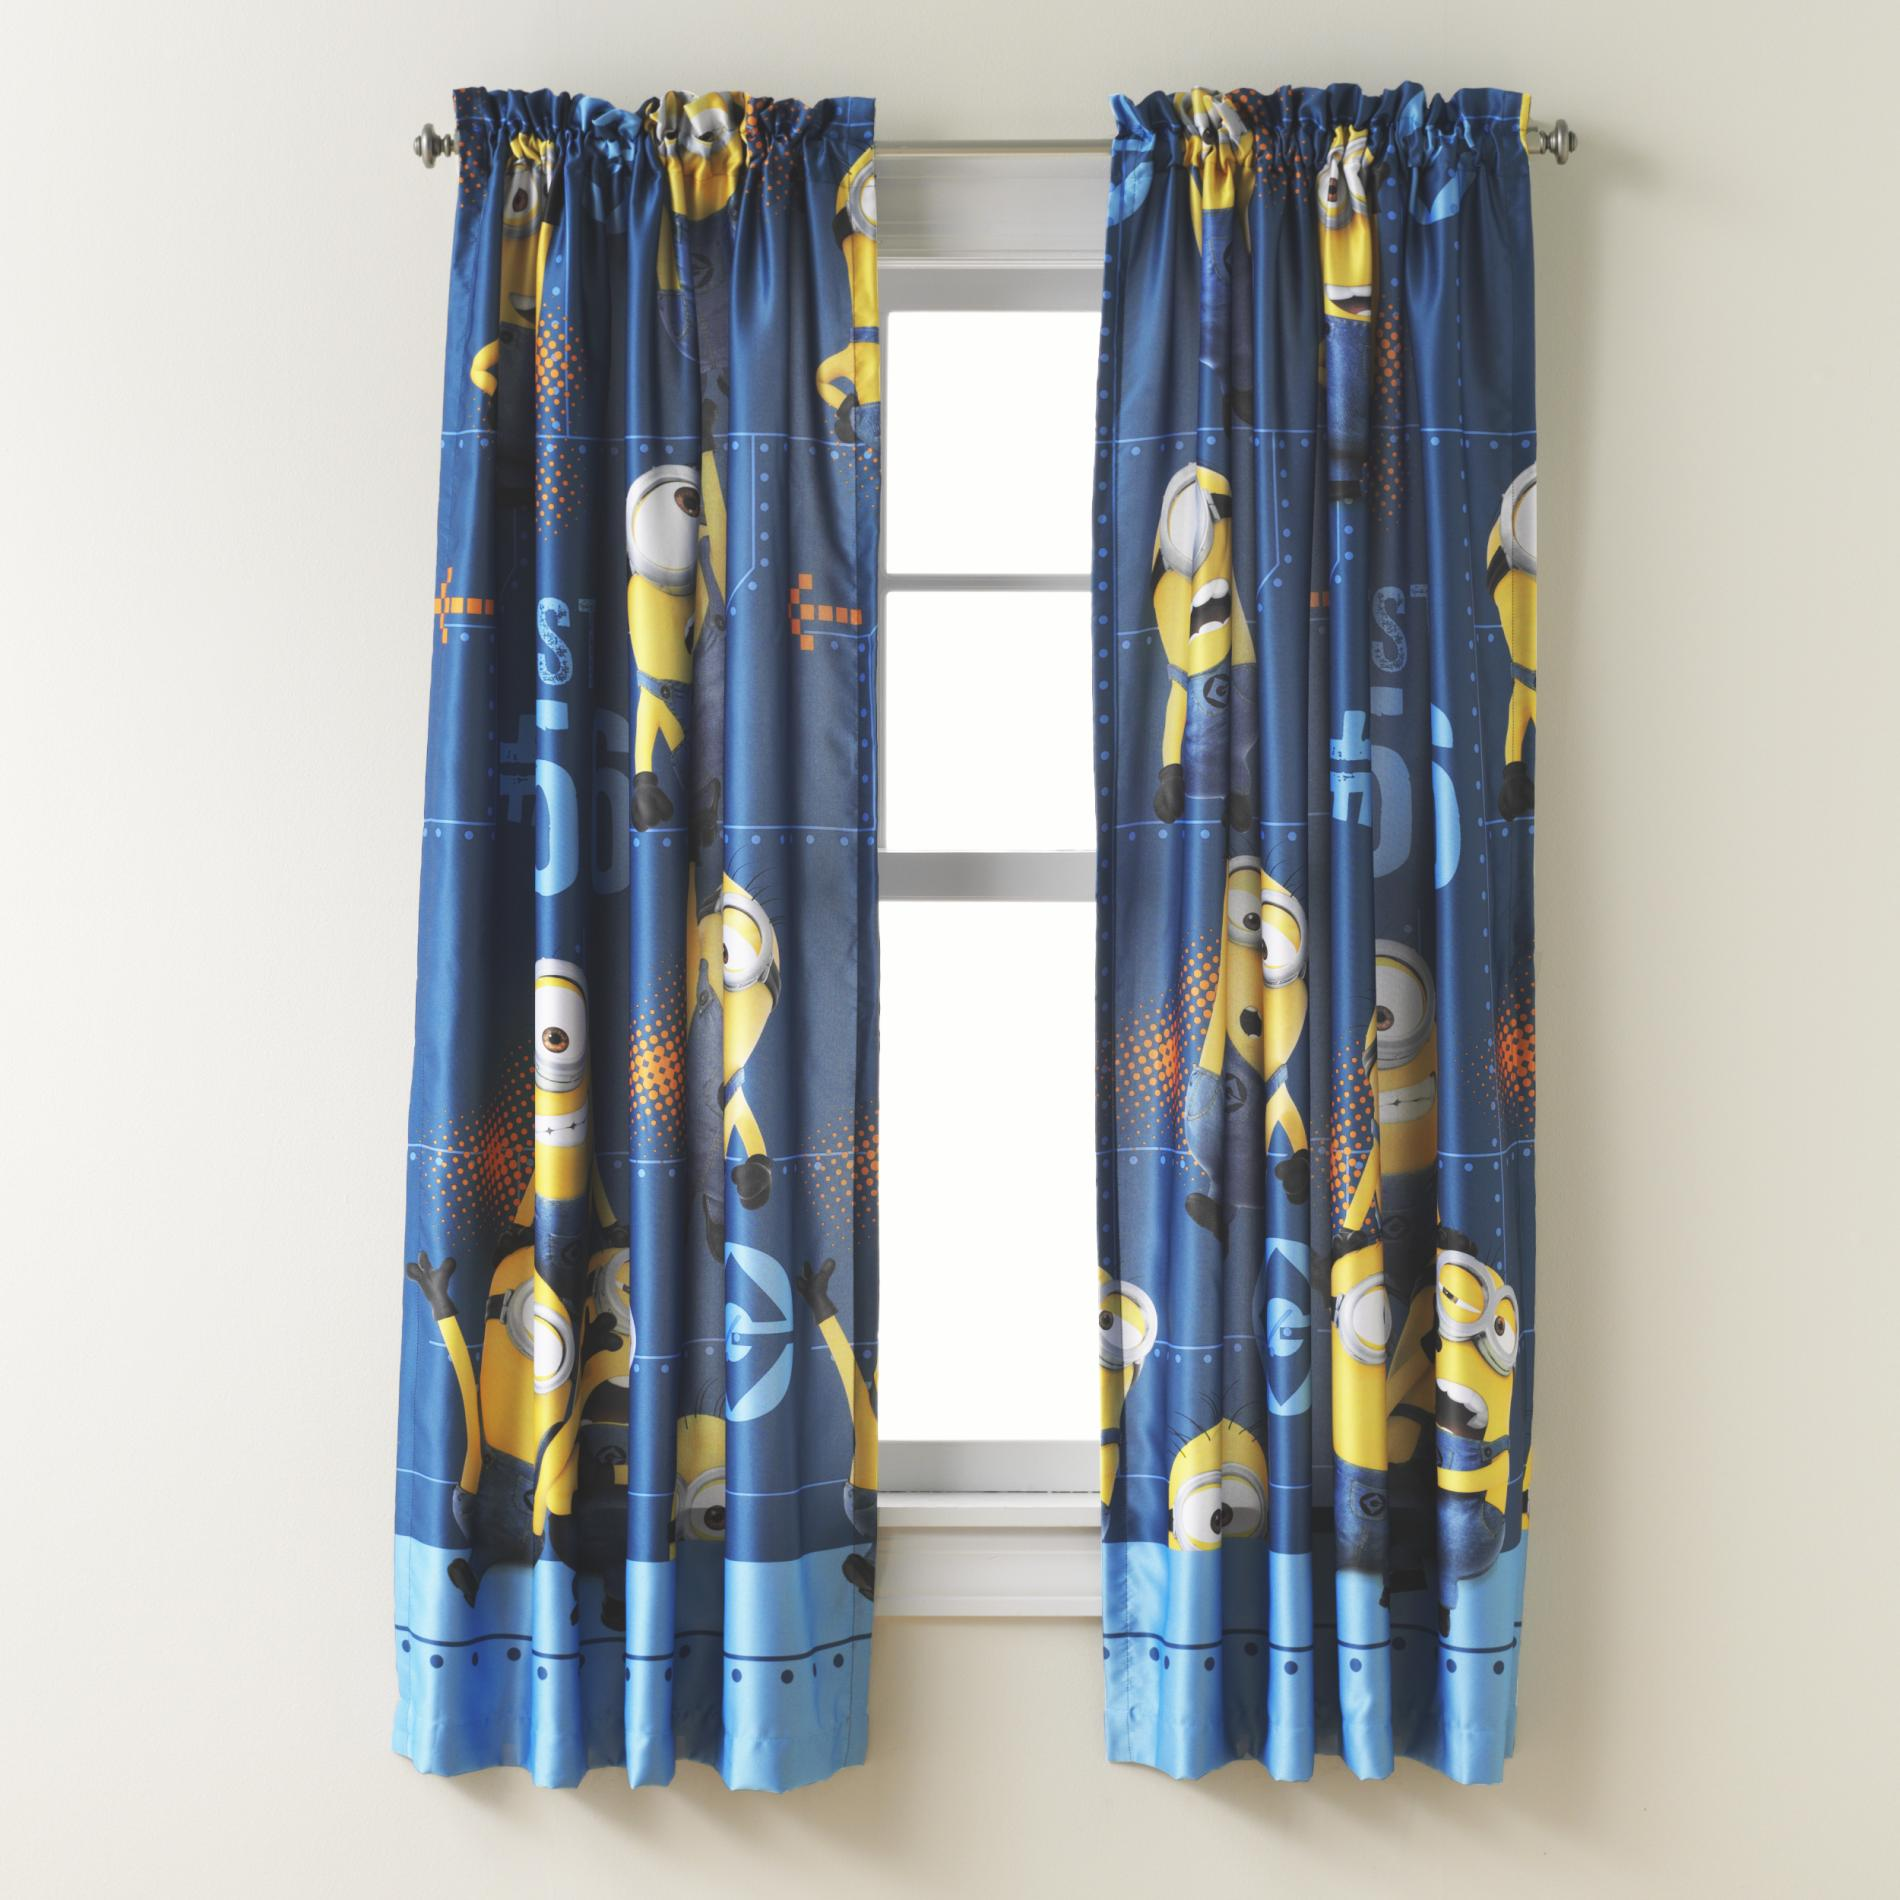 36 Inch Room Darkening Curtains Illumination Entertainment Despicable Me Minions Room Darkening Panel